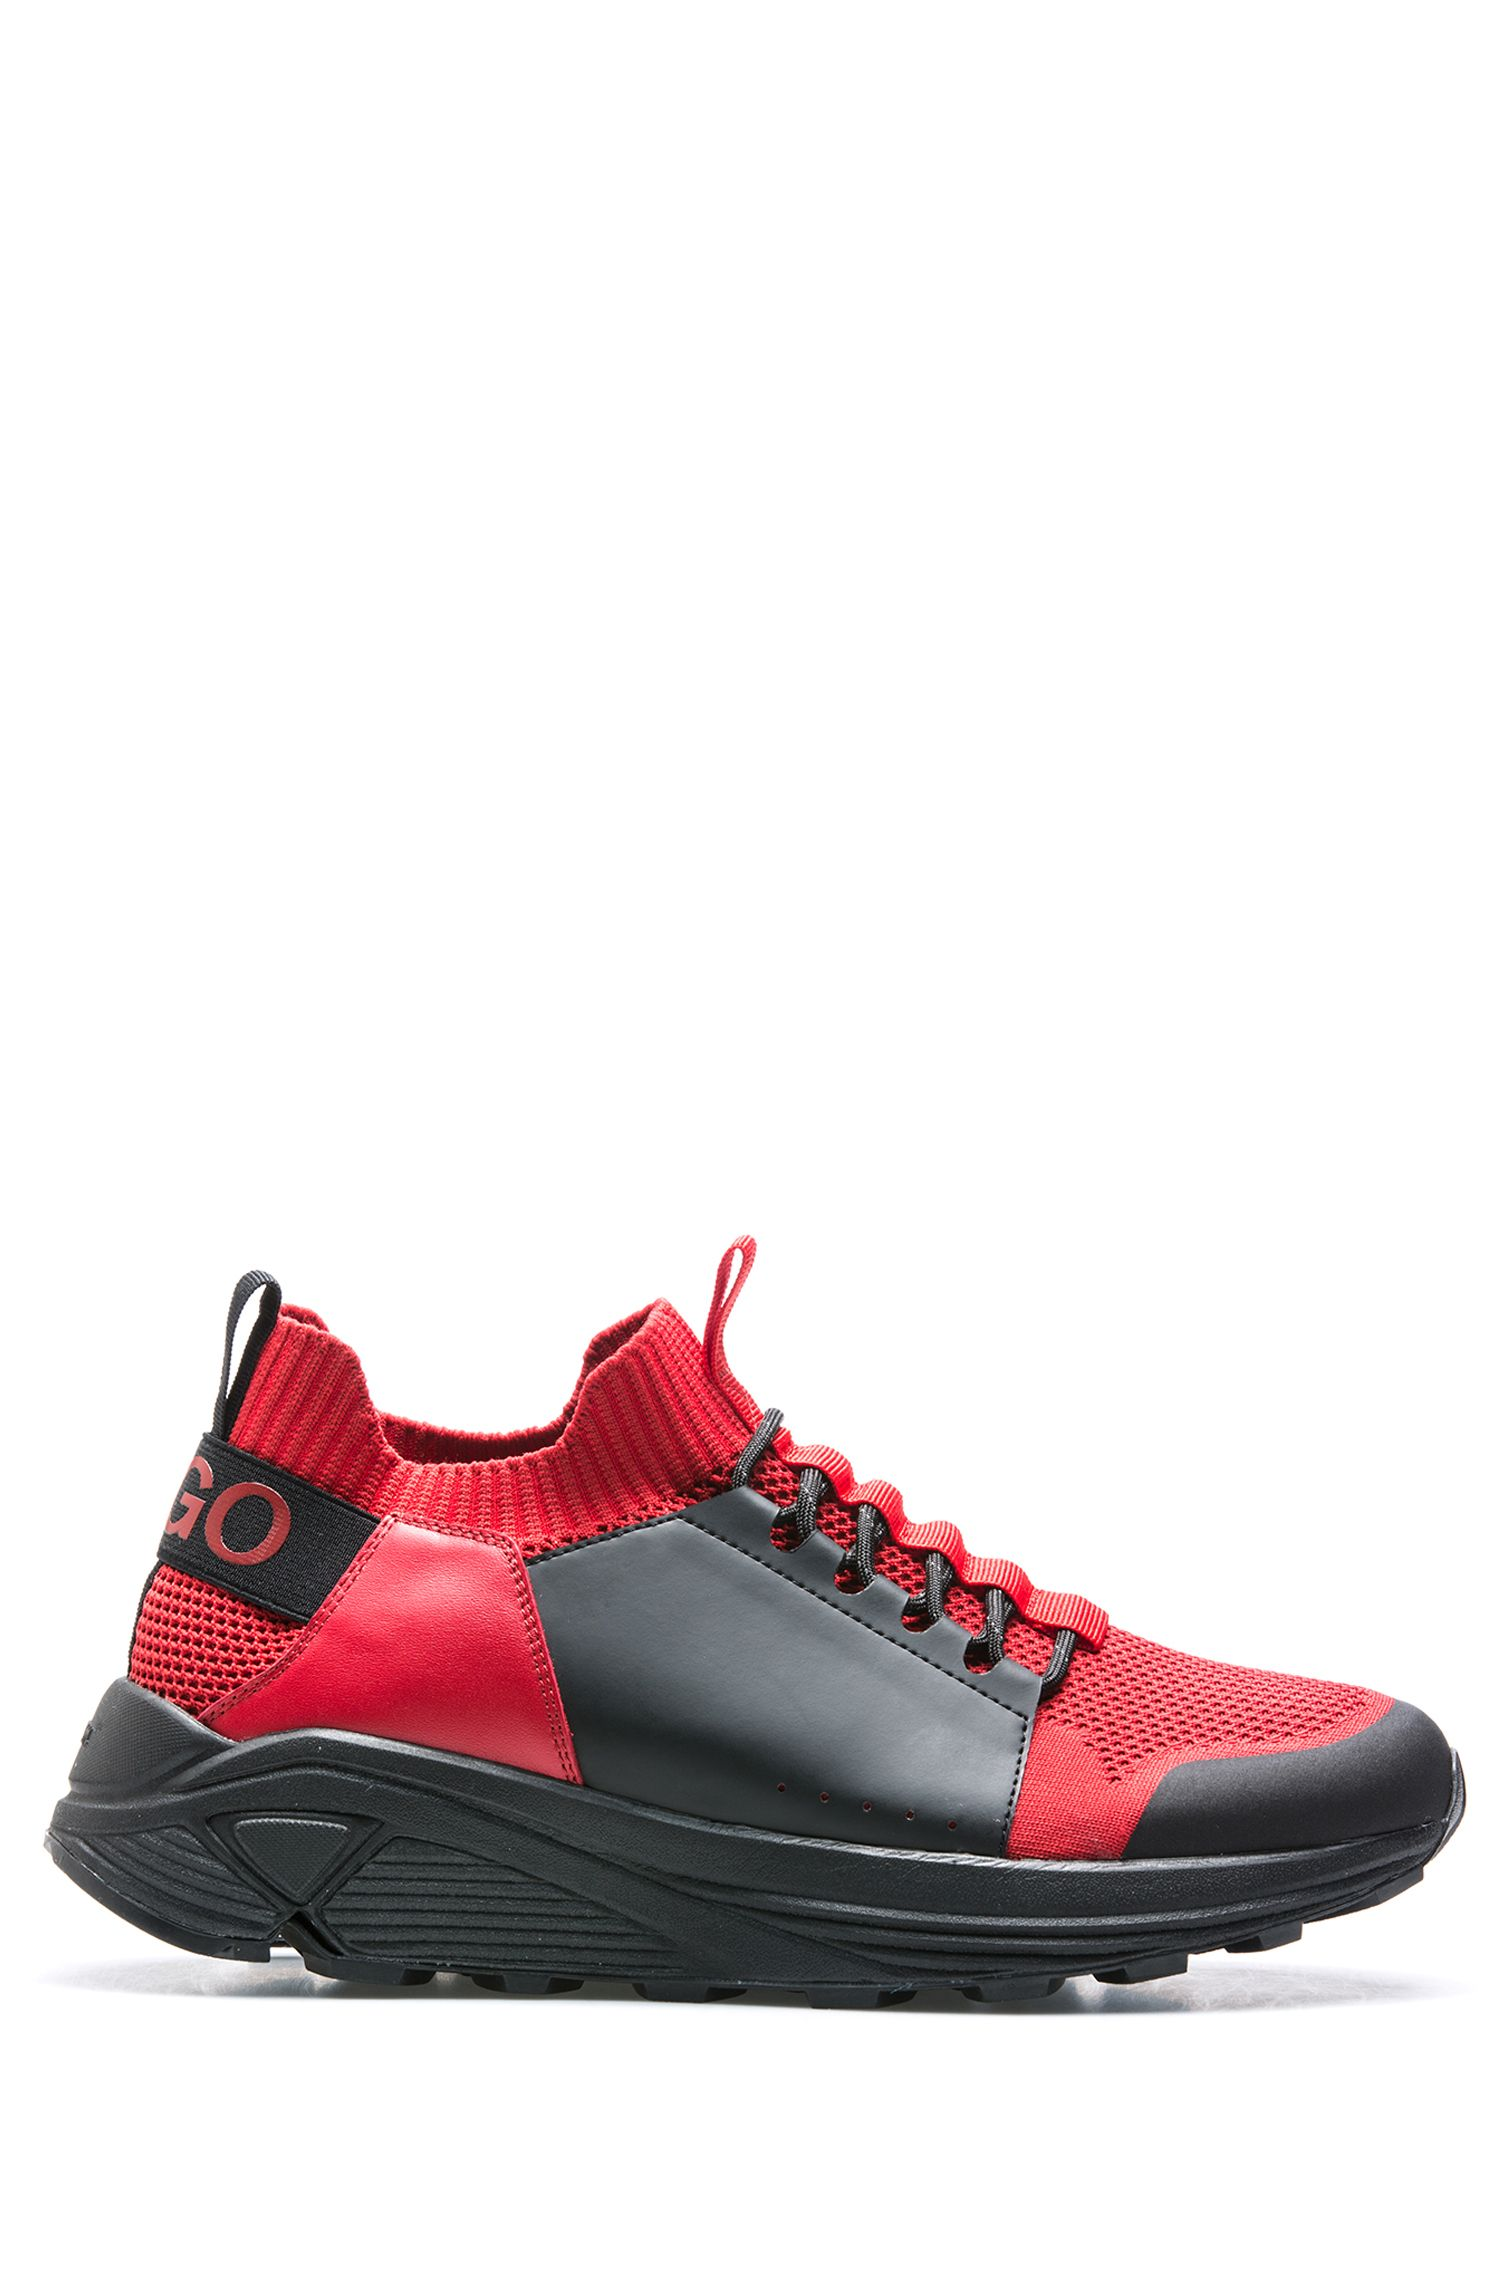 Modern lace-up sneakers with thick Vibram sole, Dark Red